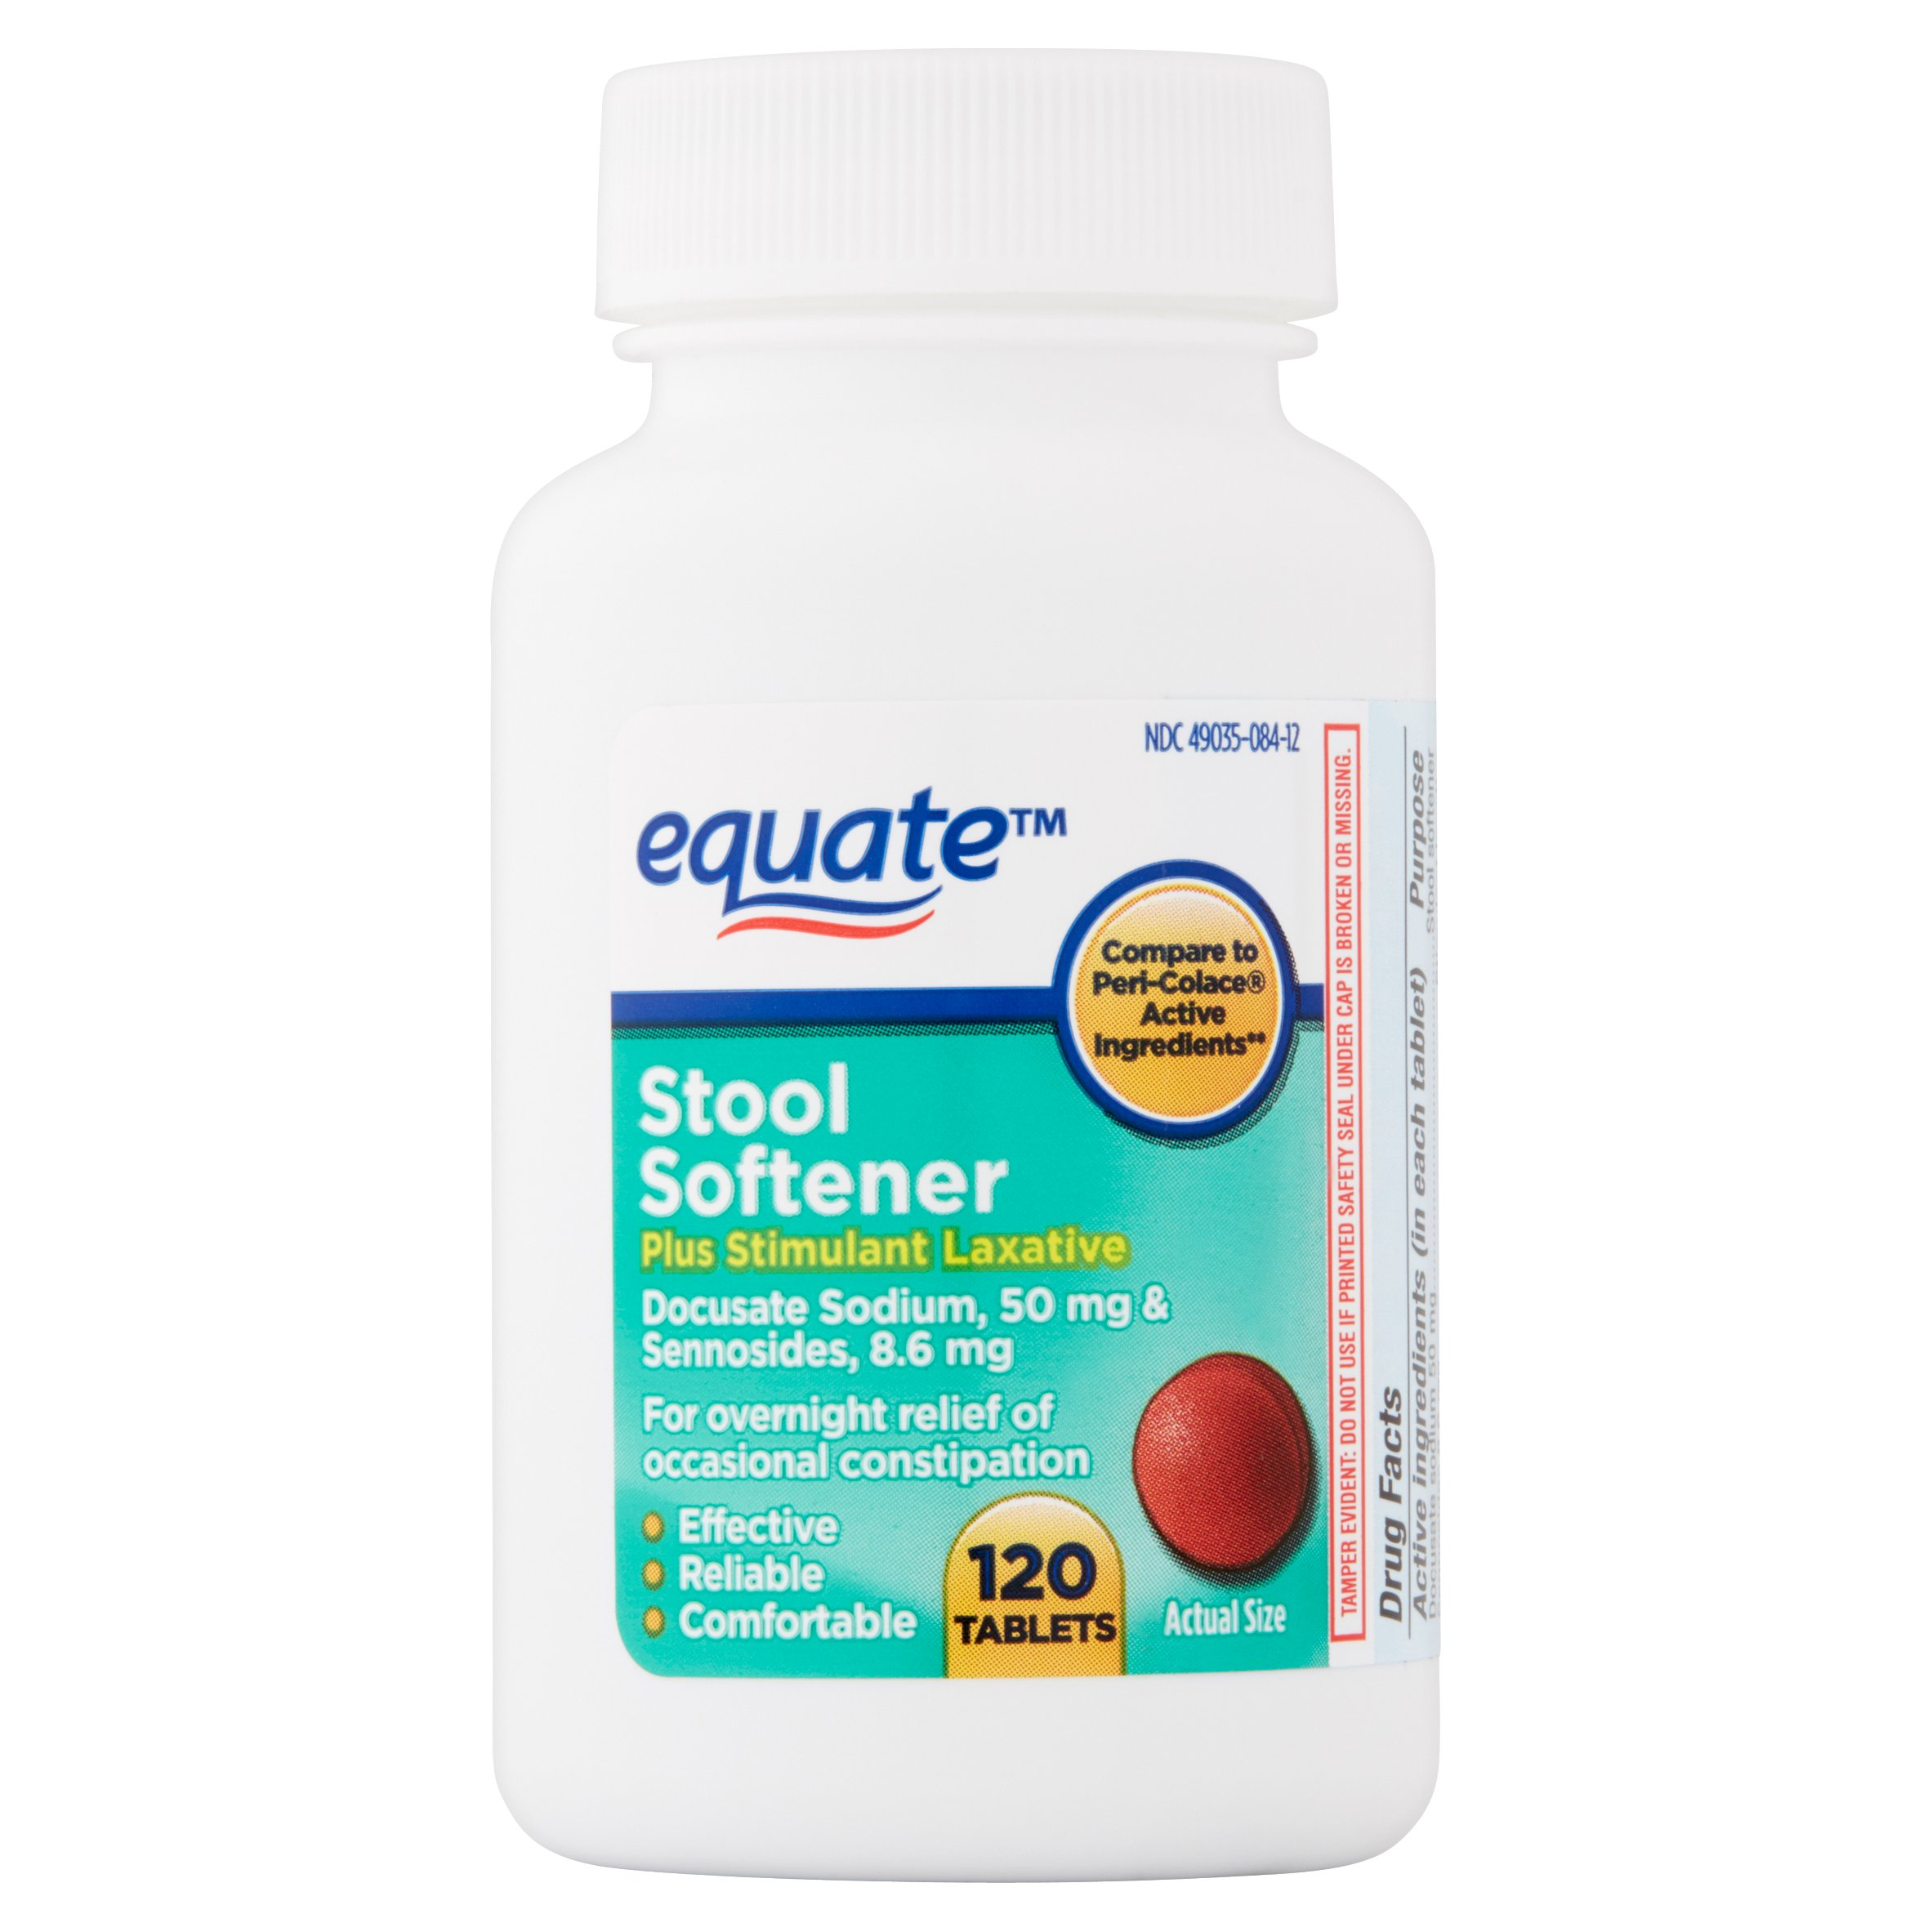 Equate Stool Softener Plus Stimulant Laxative Tablets, 50 mg, 120 Ct